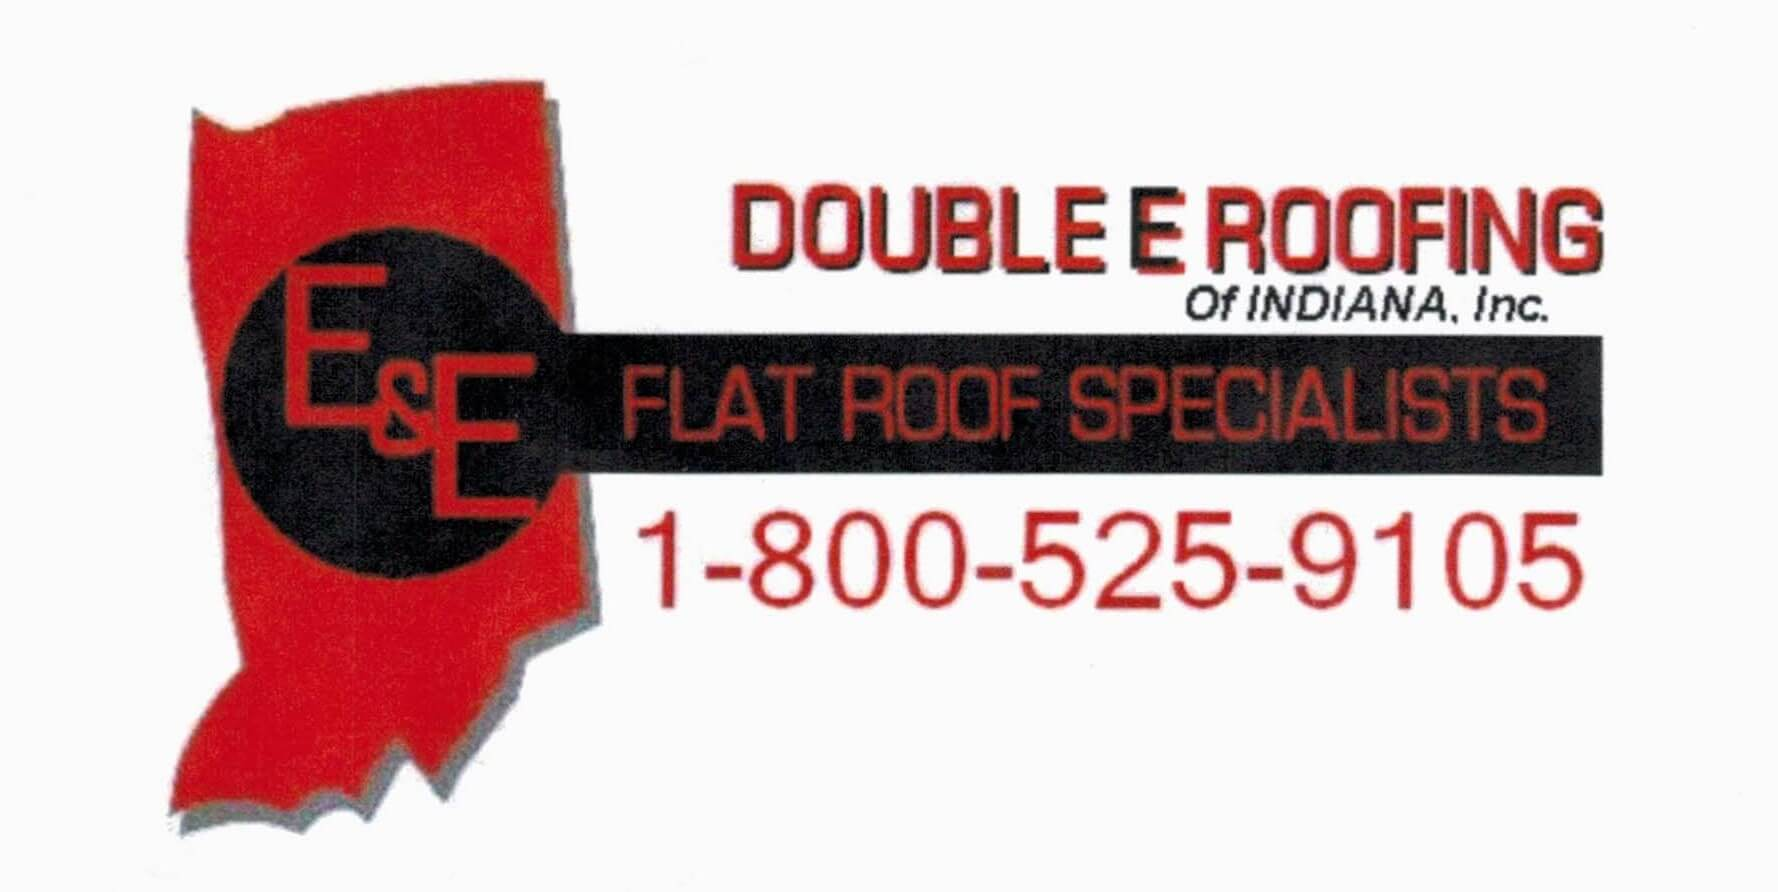 Double E Roofing of Indiana, Inc Logo